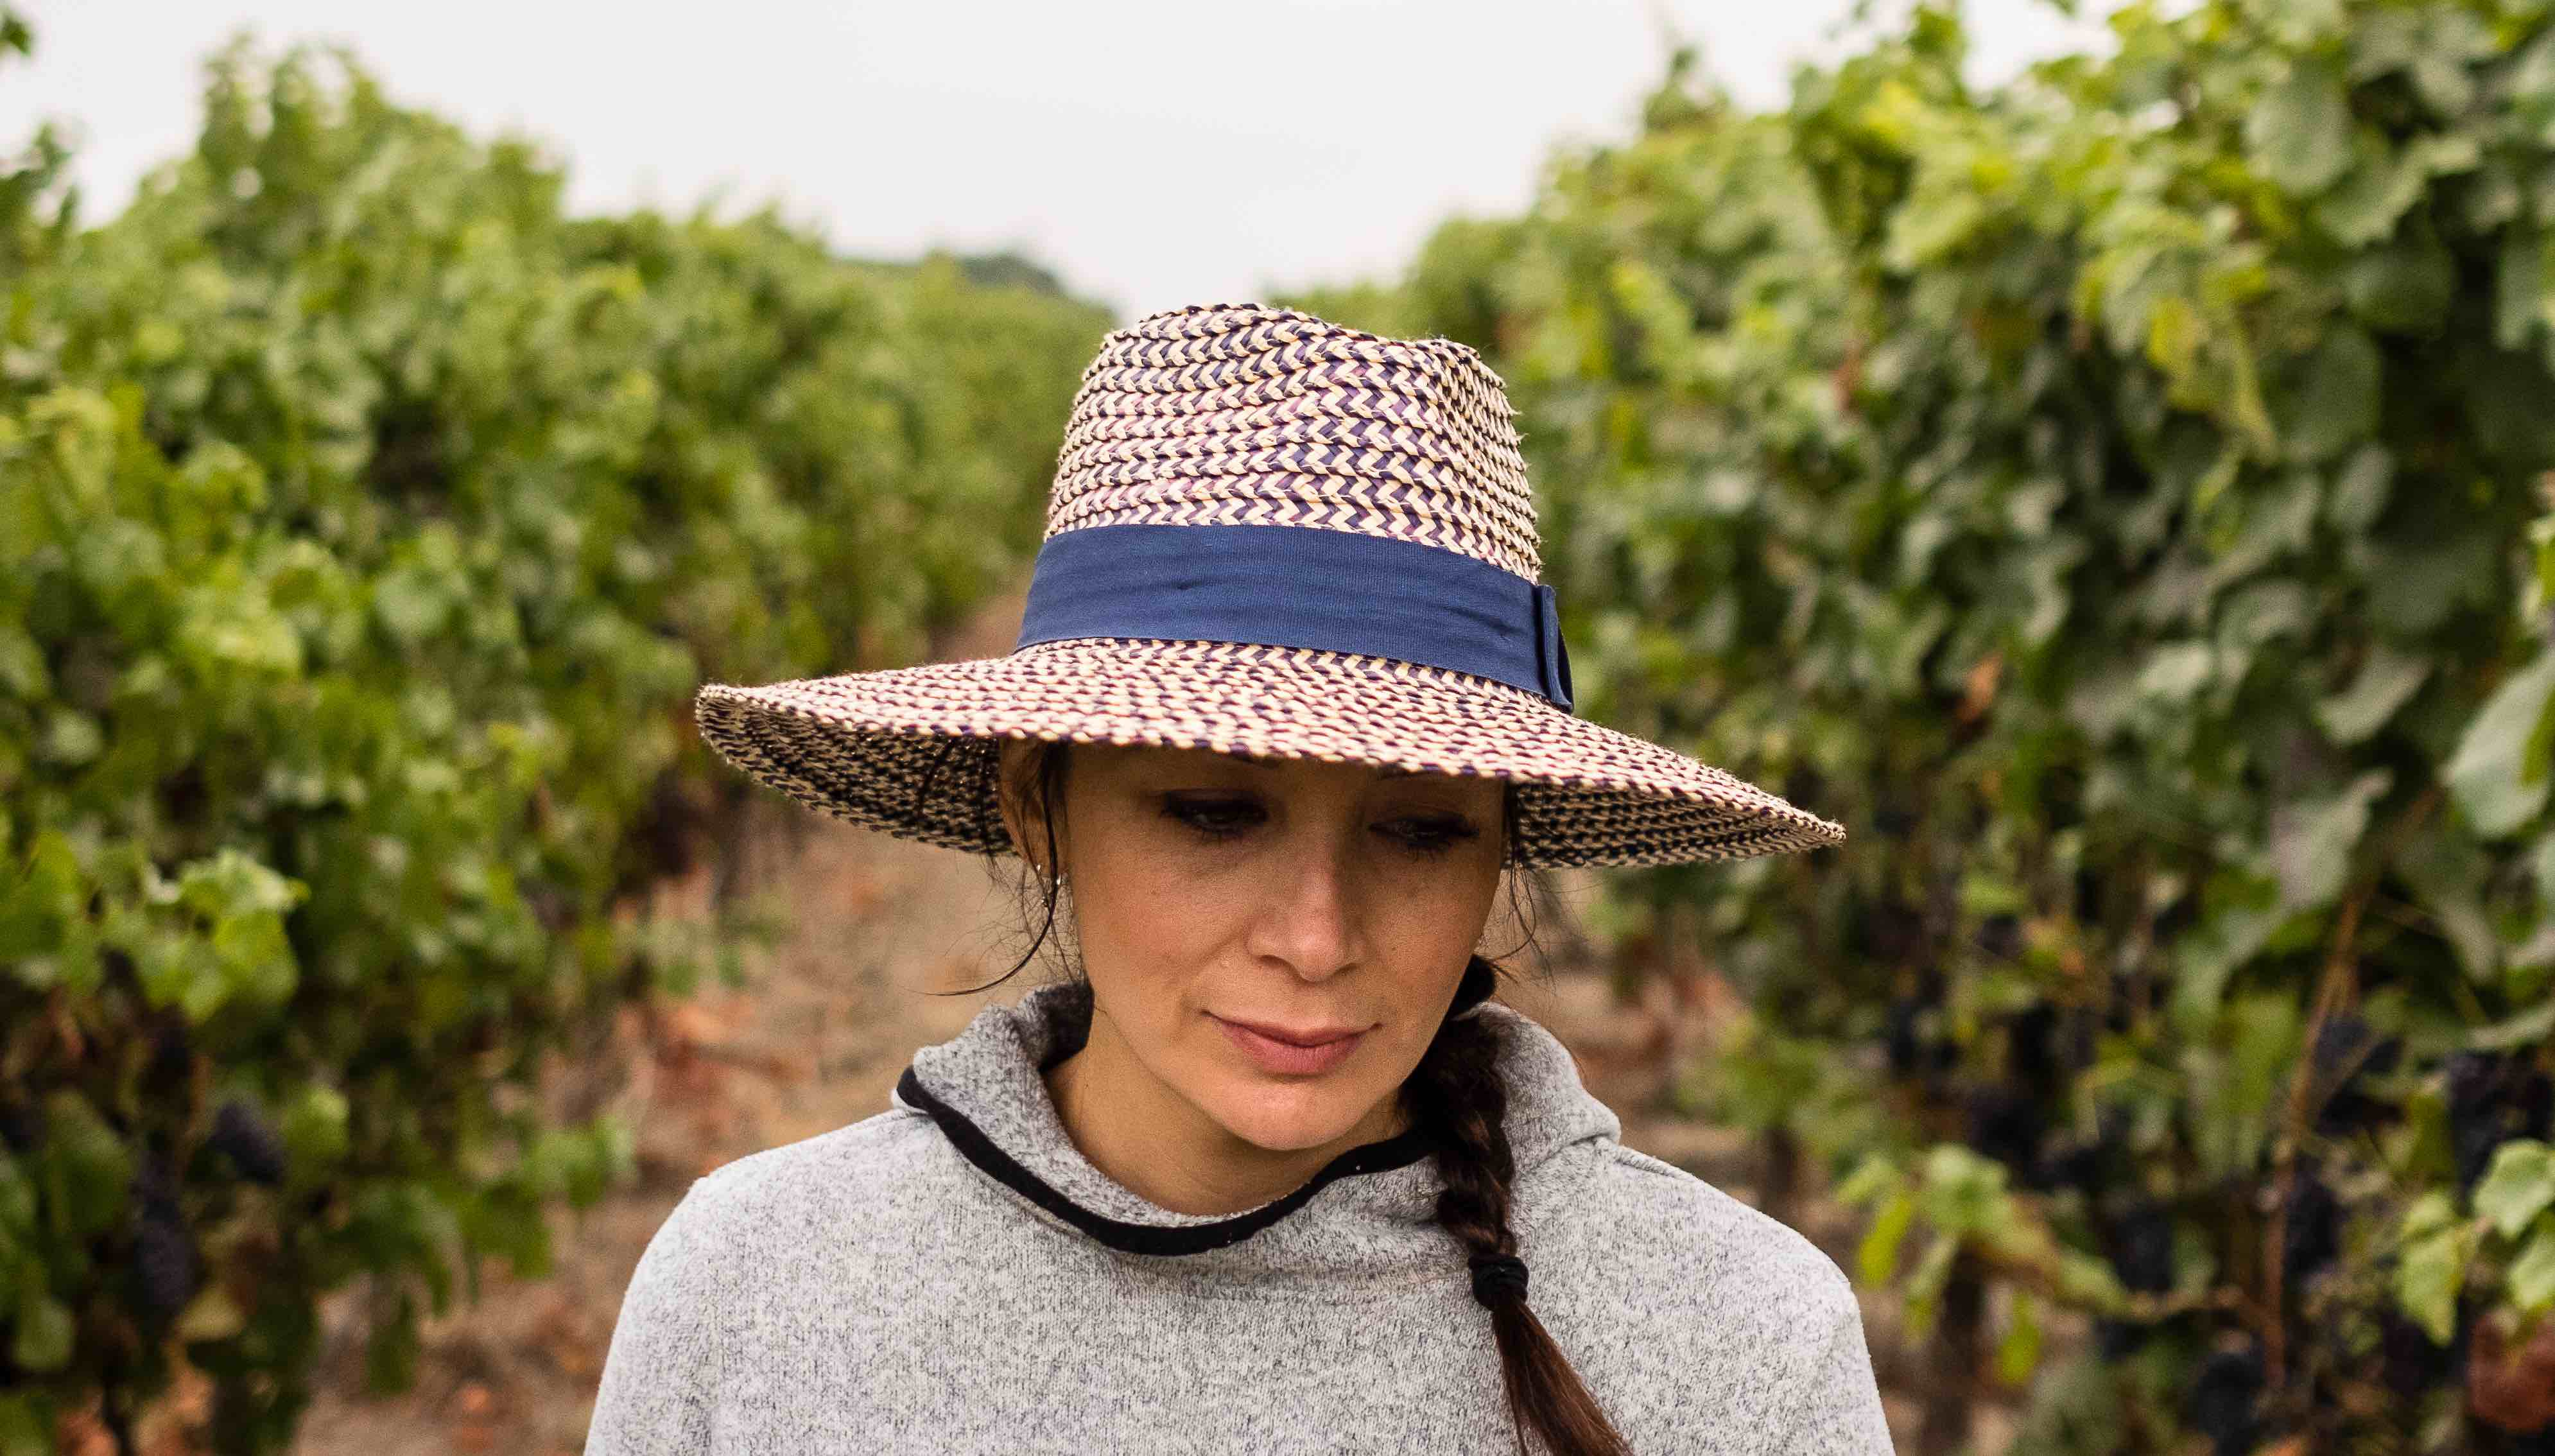 REVIEW: 'Harvest Season' Documentary Portrays Latinos Behind Wine Labels